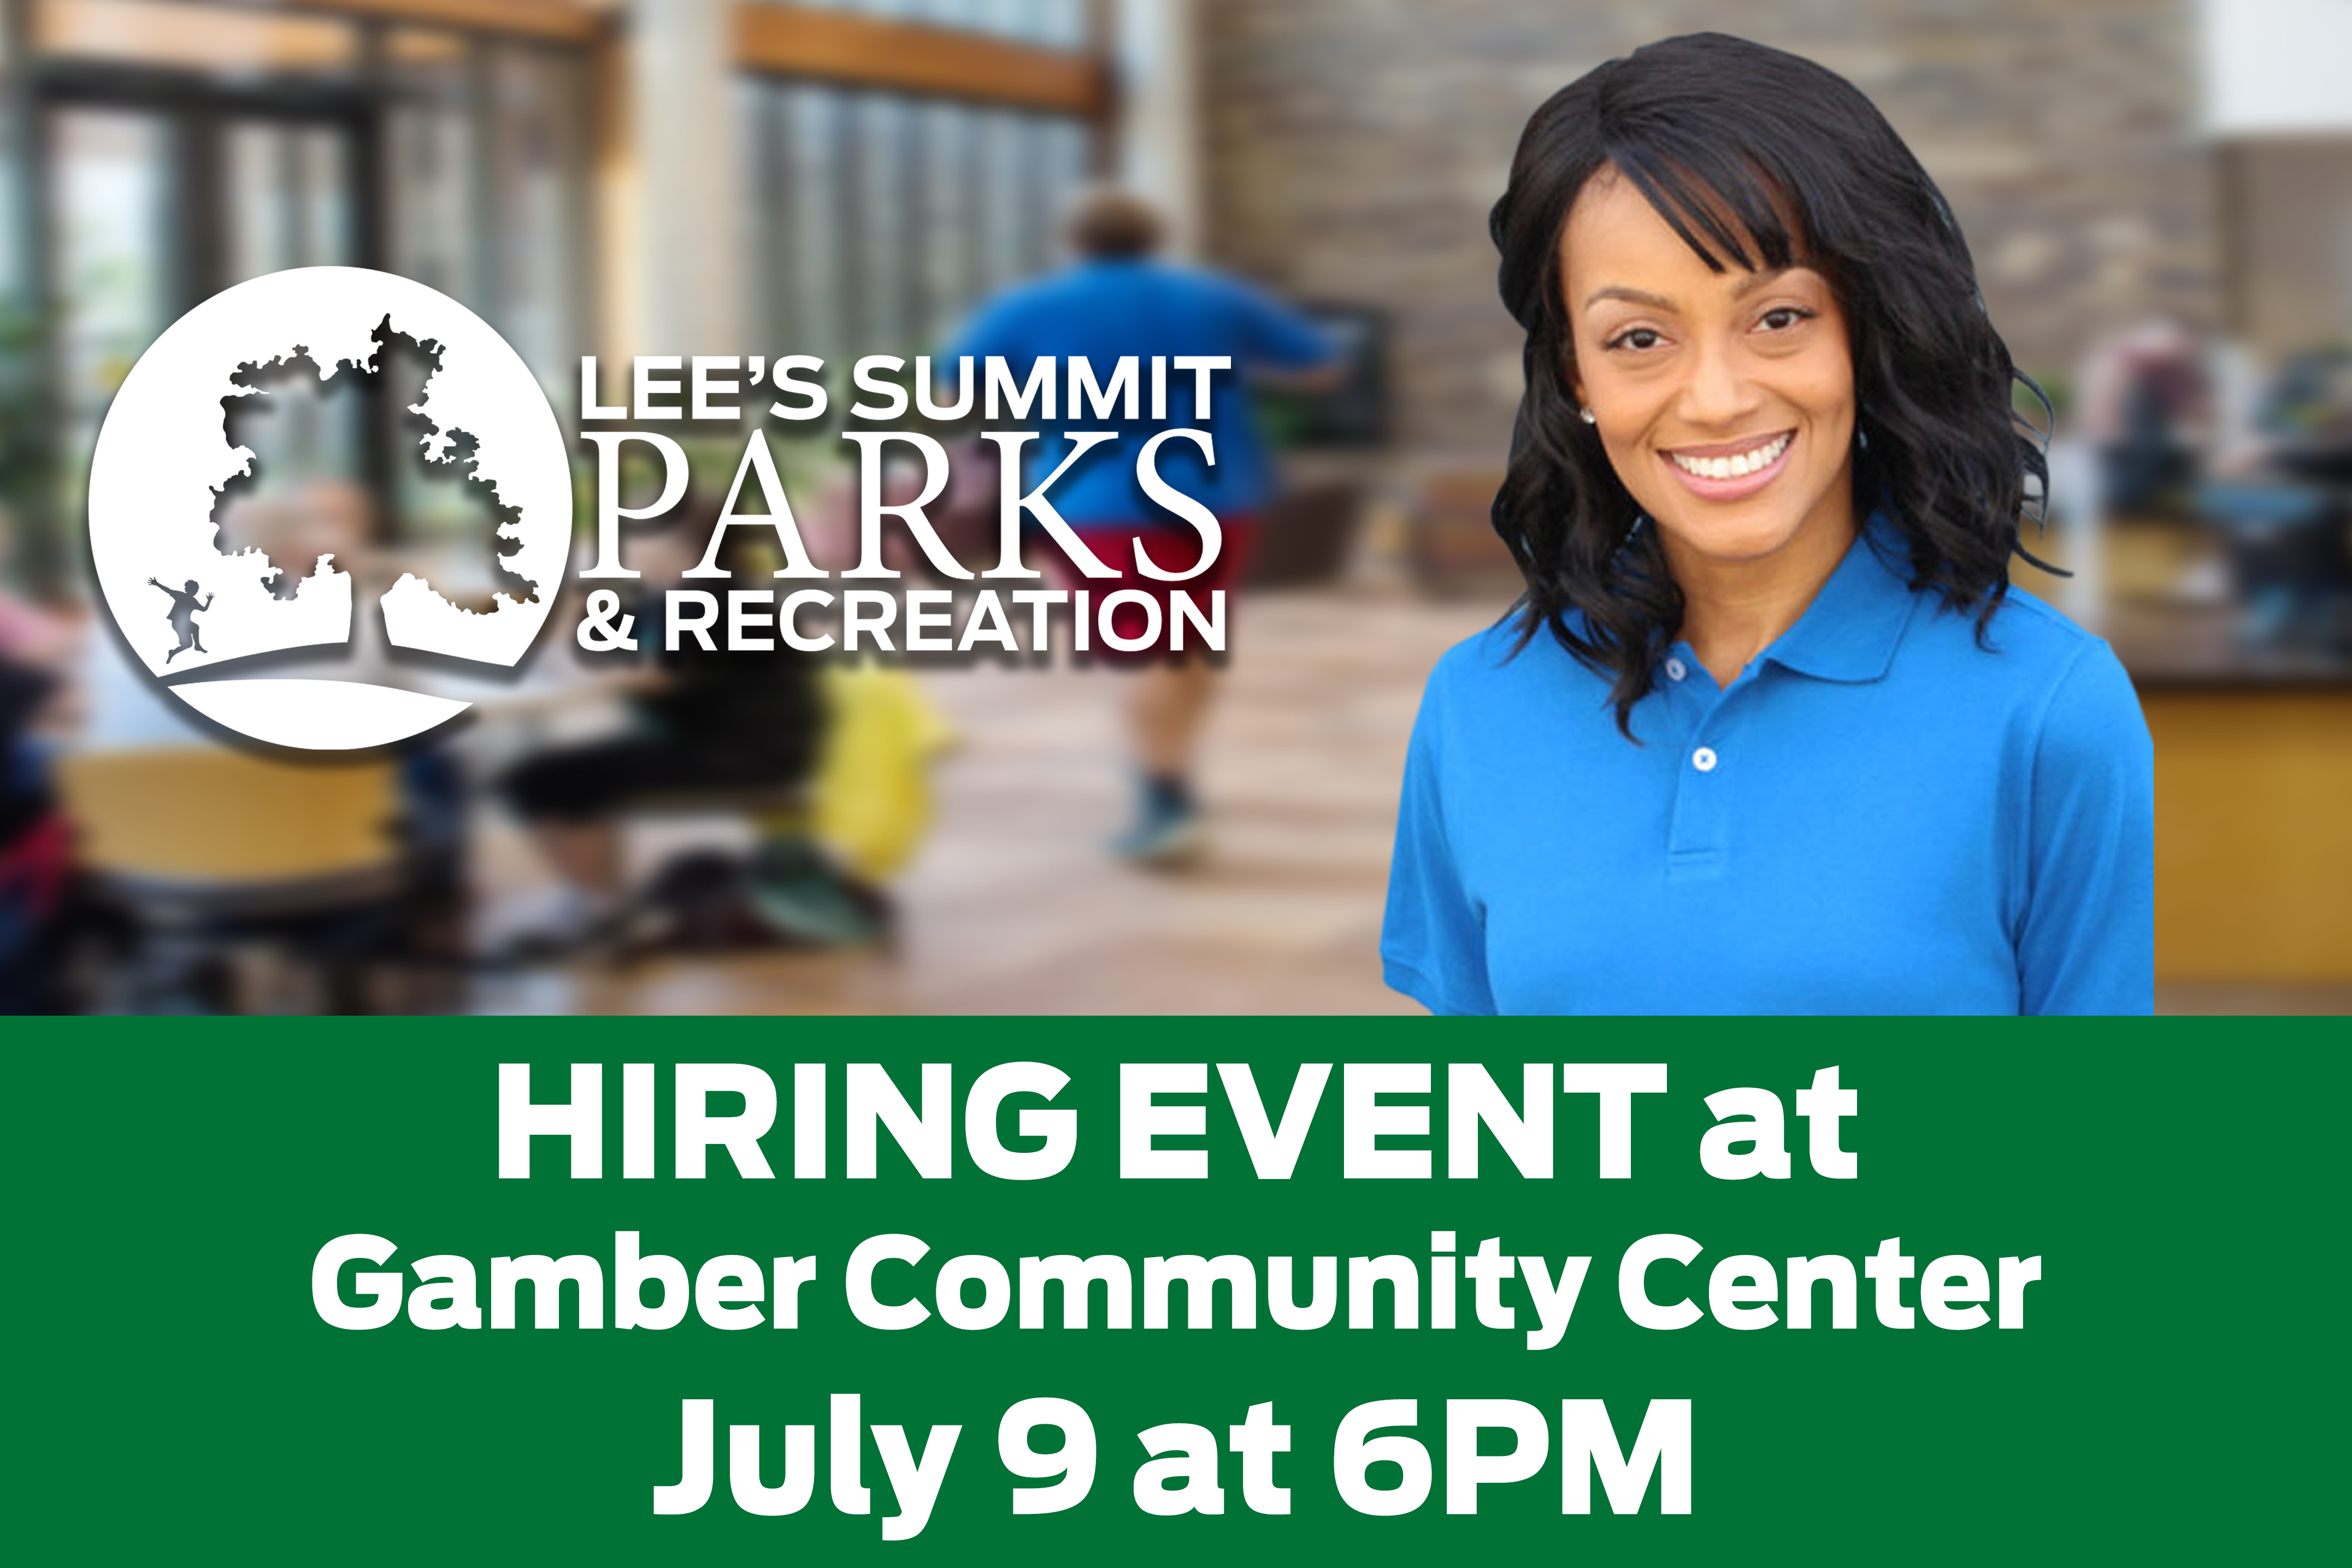 LSPR to Hold Hiring Event at Gamber